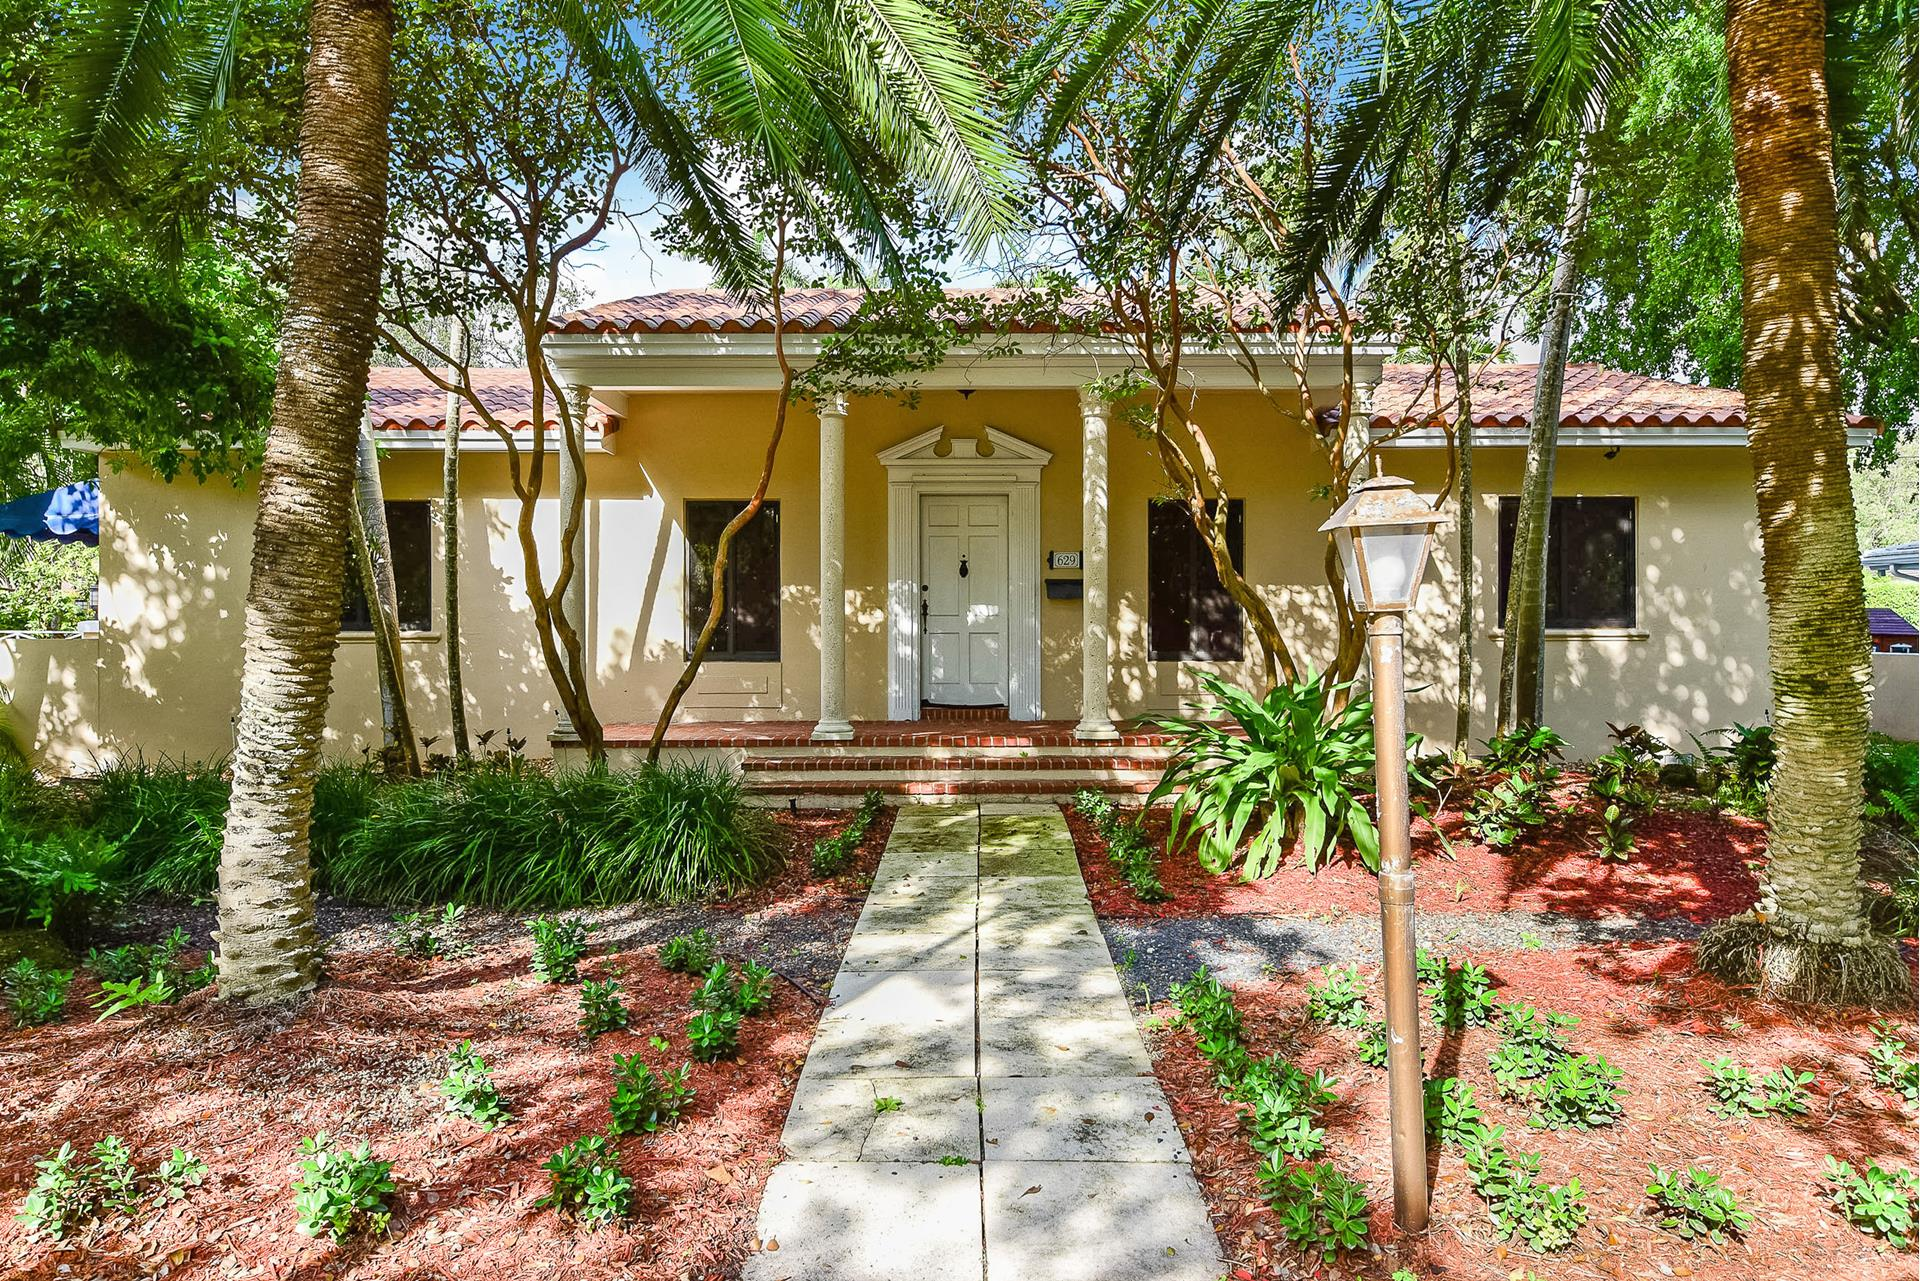 629 Sunset Dr - Coral Gables, Florida